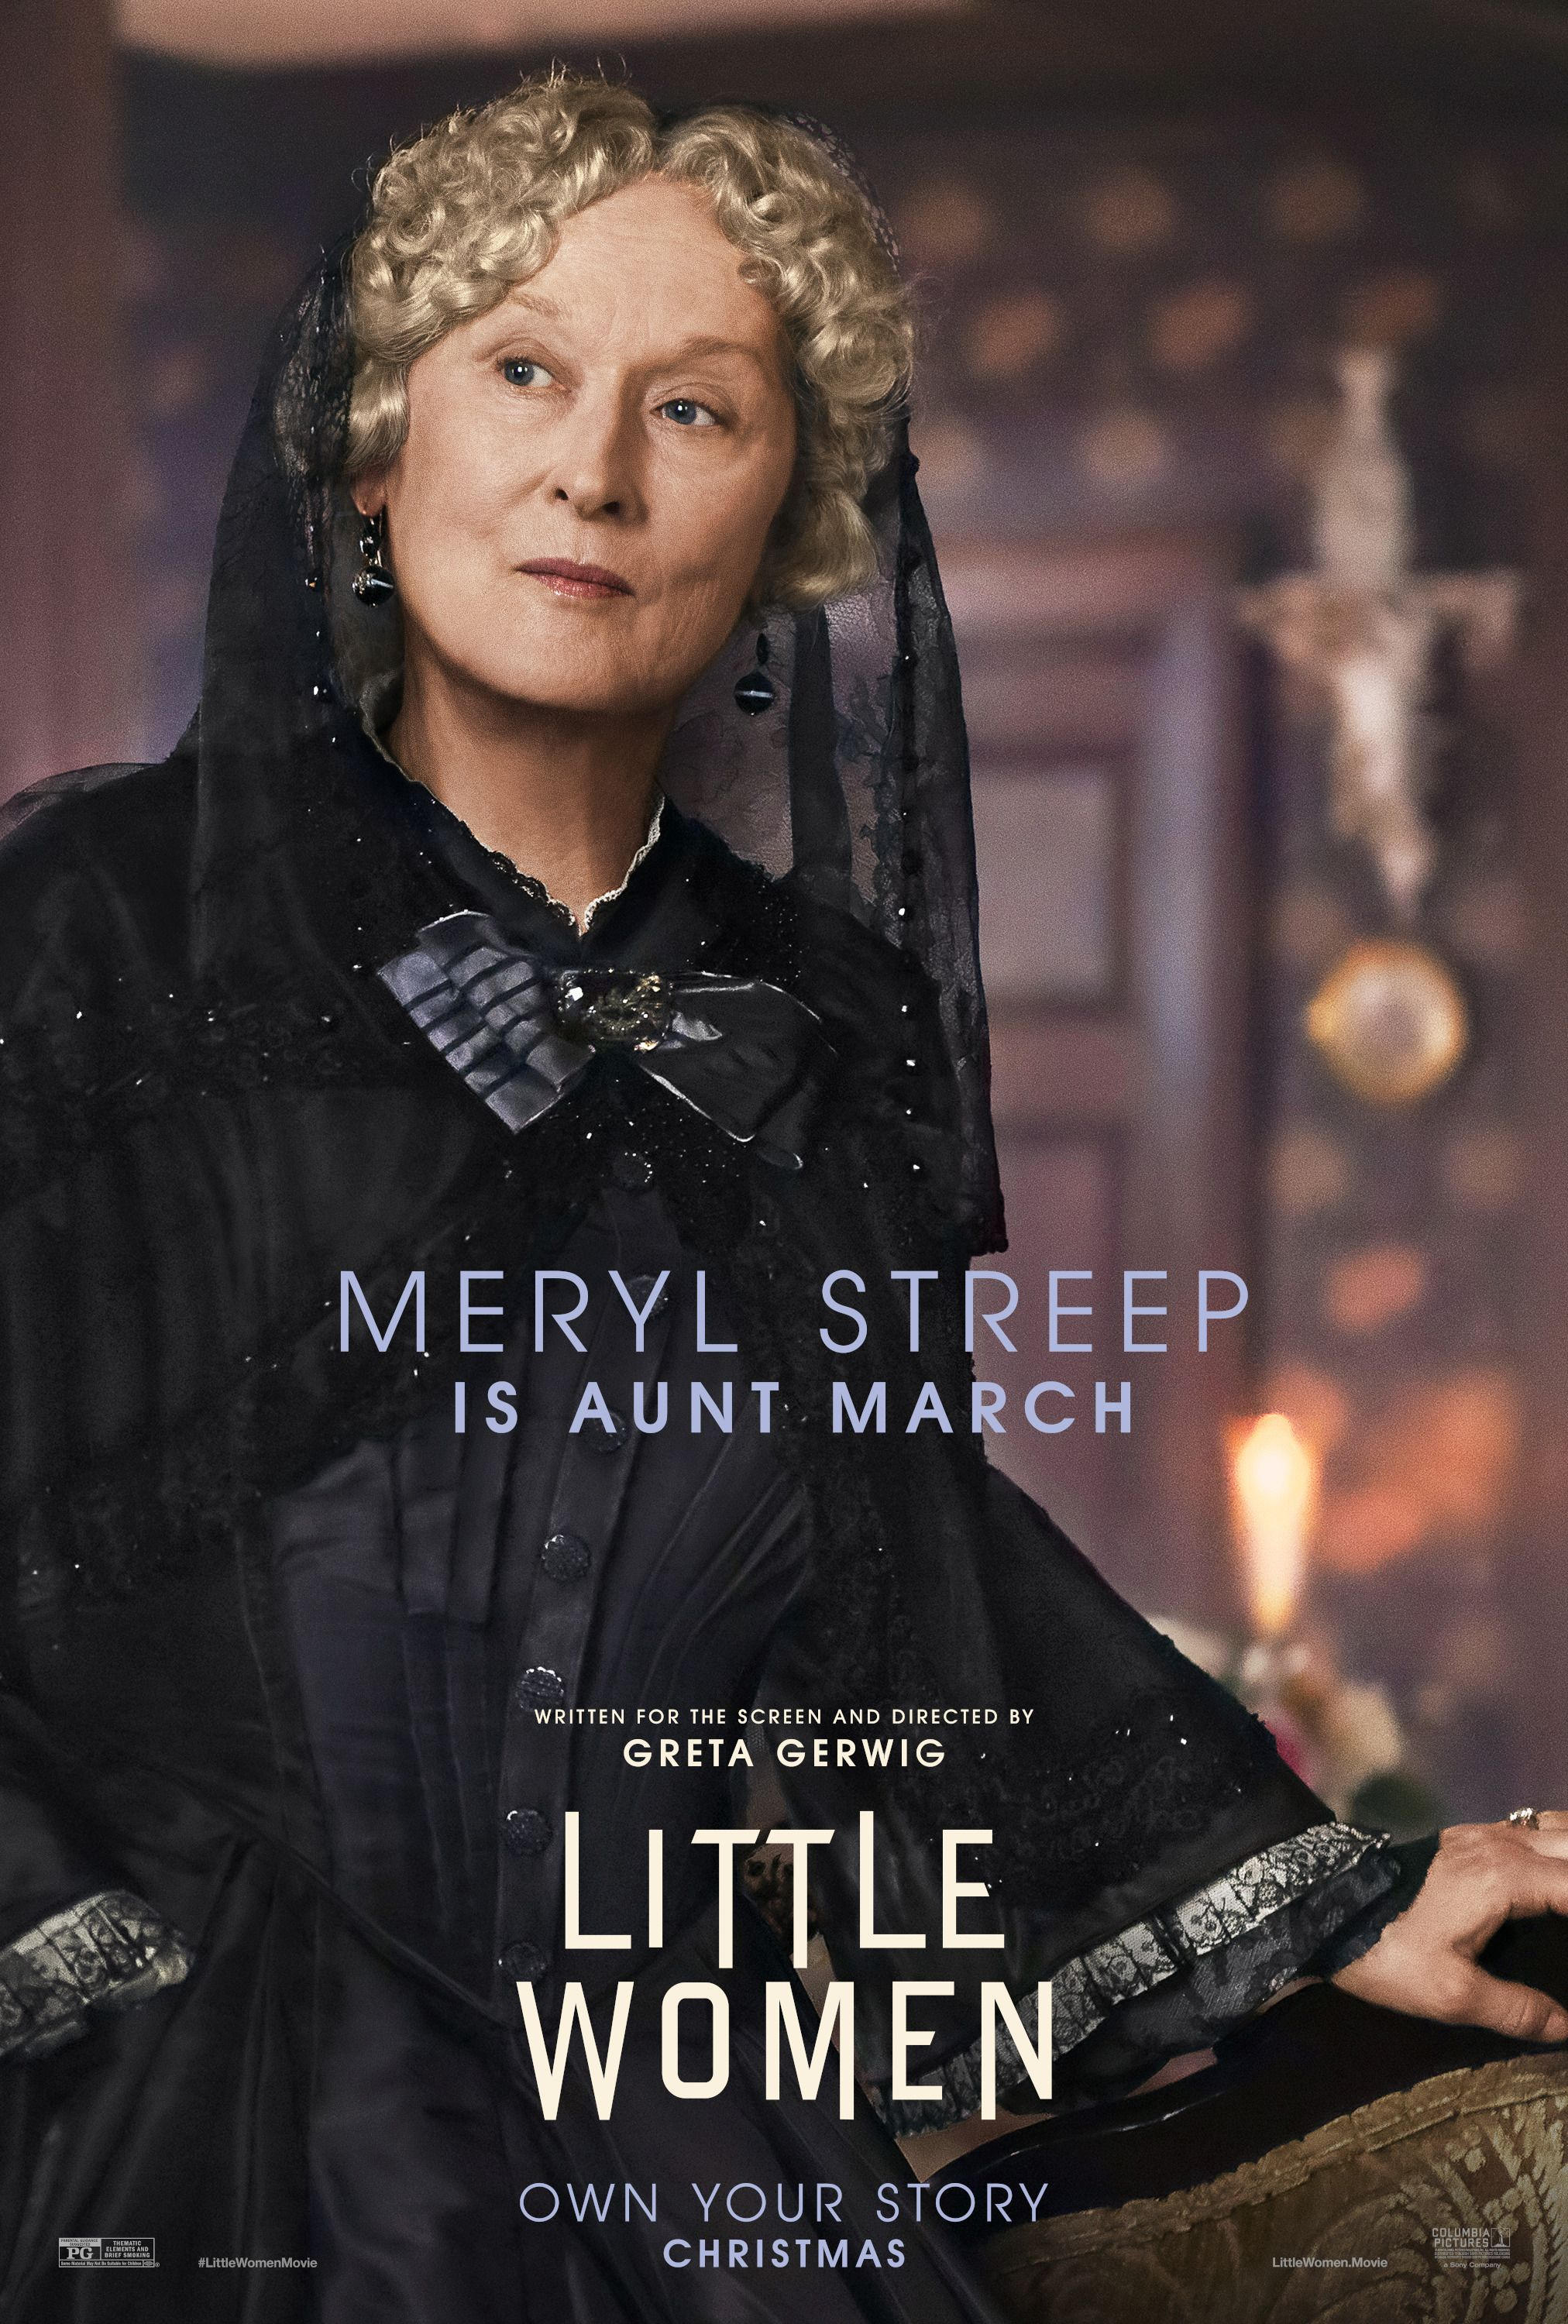 Little Women (2019) Movie Posters | Woman movie, Meryl streep ...